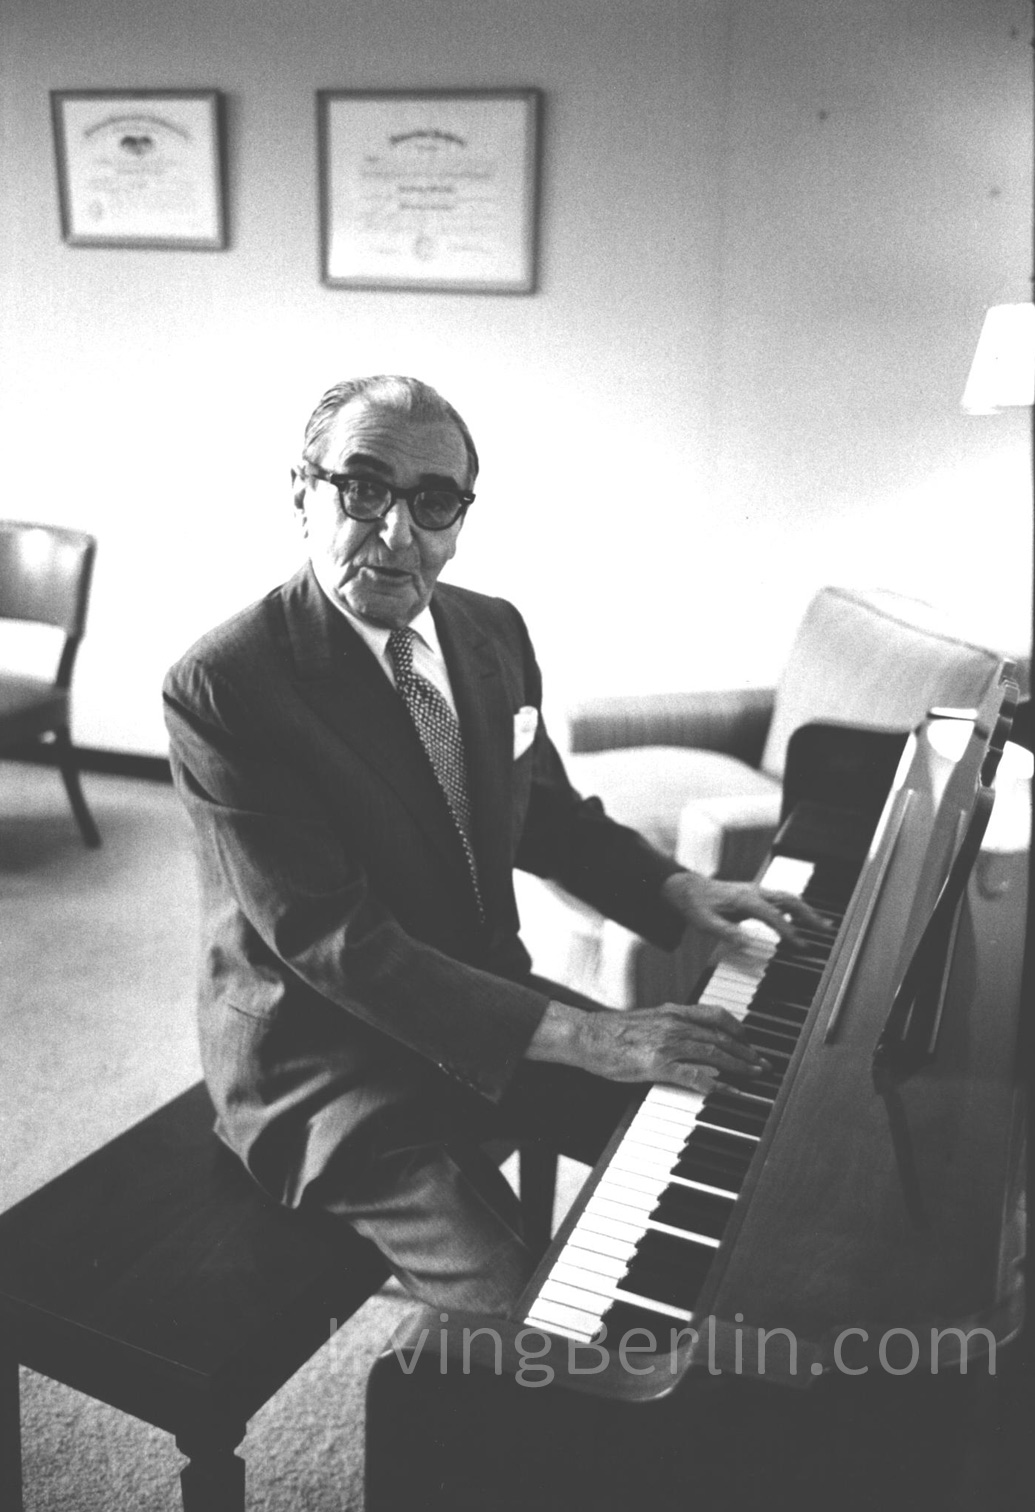 Irving-Berlin-piano-4.jpg